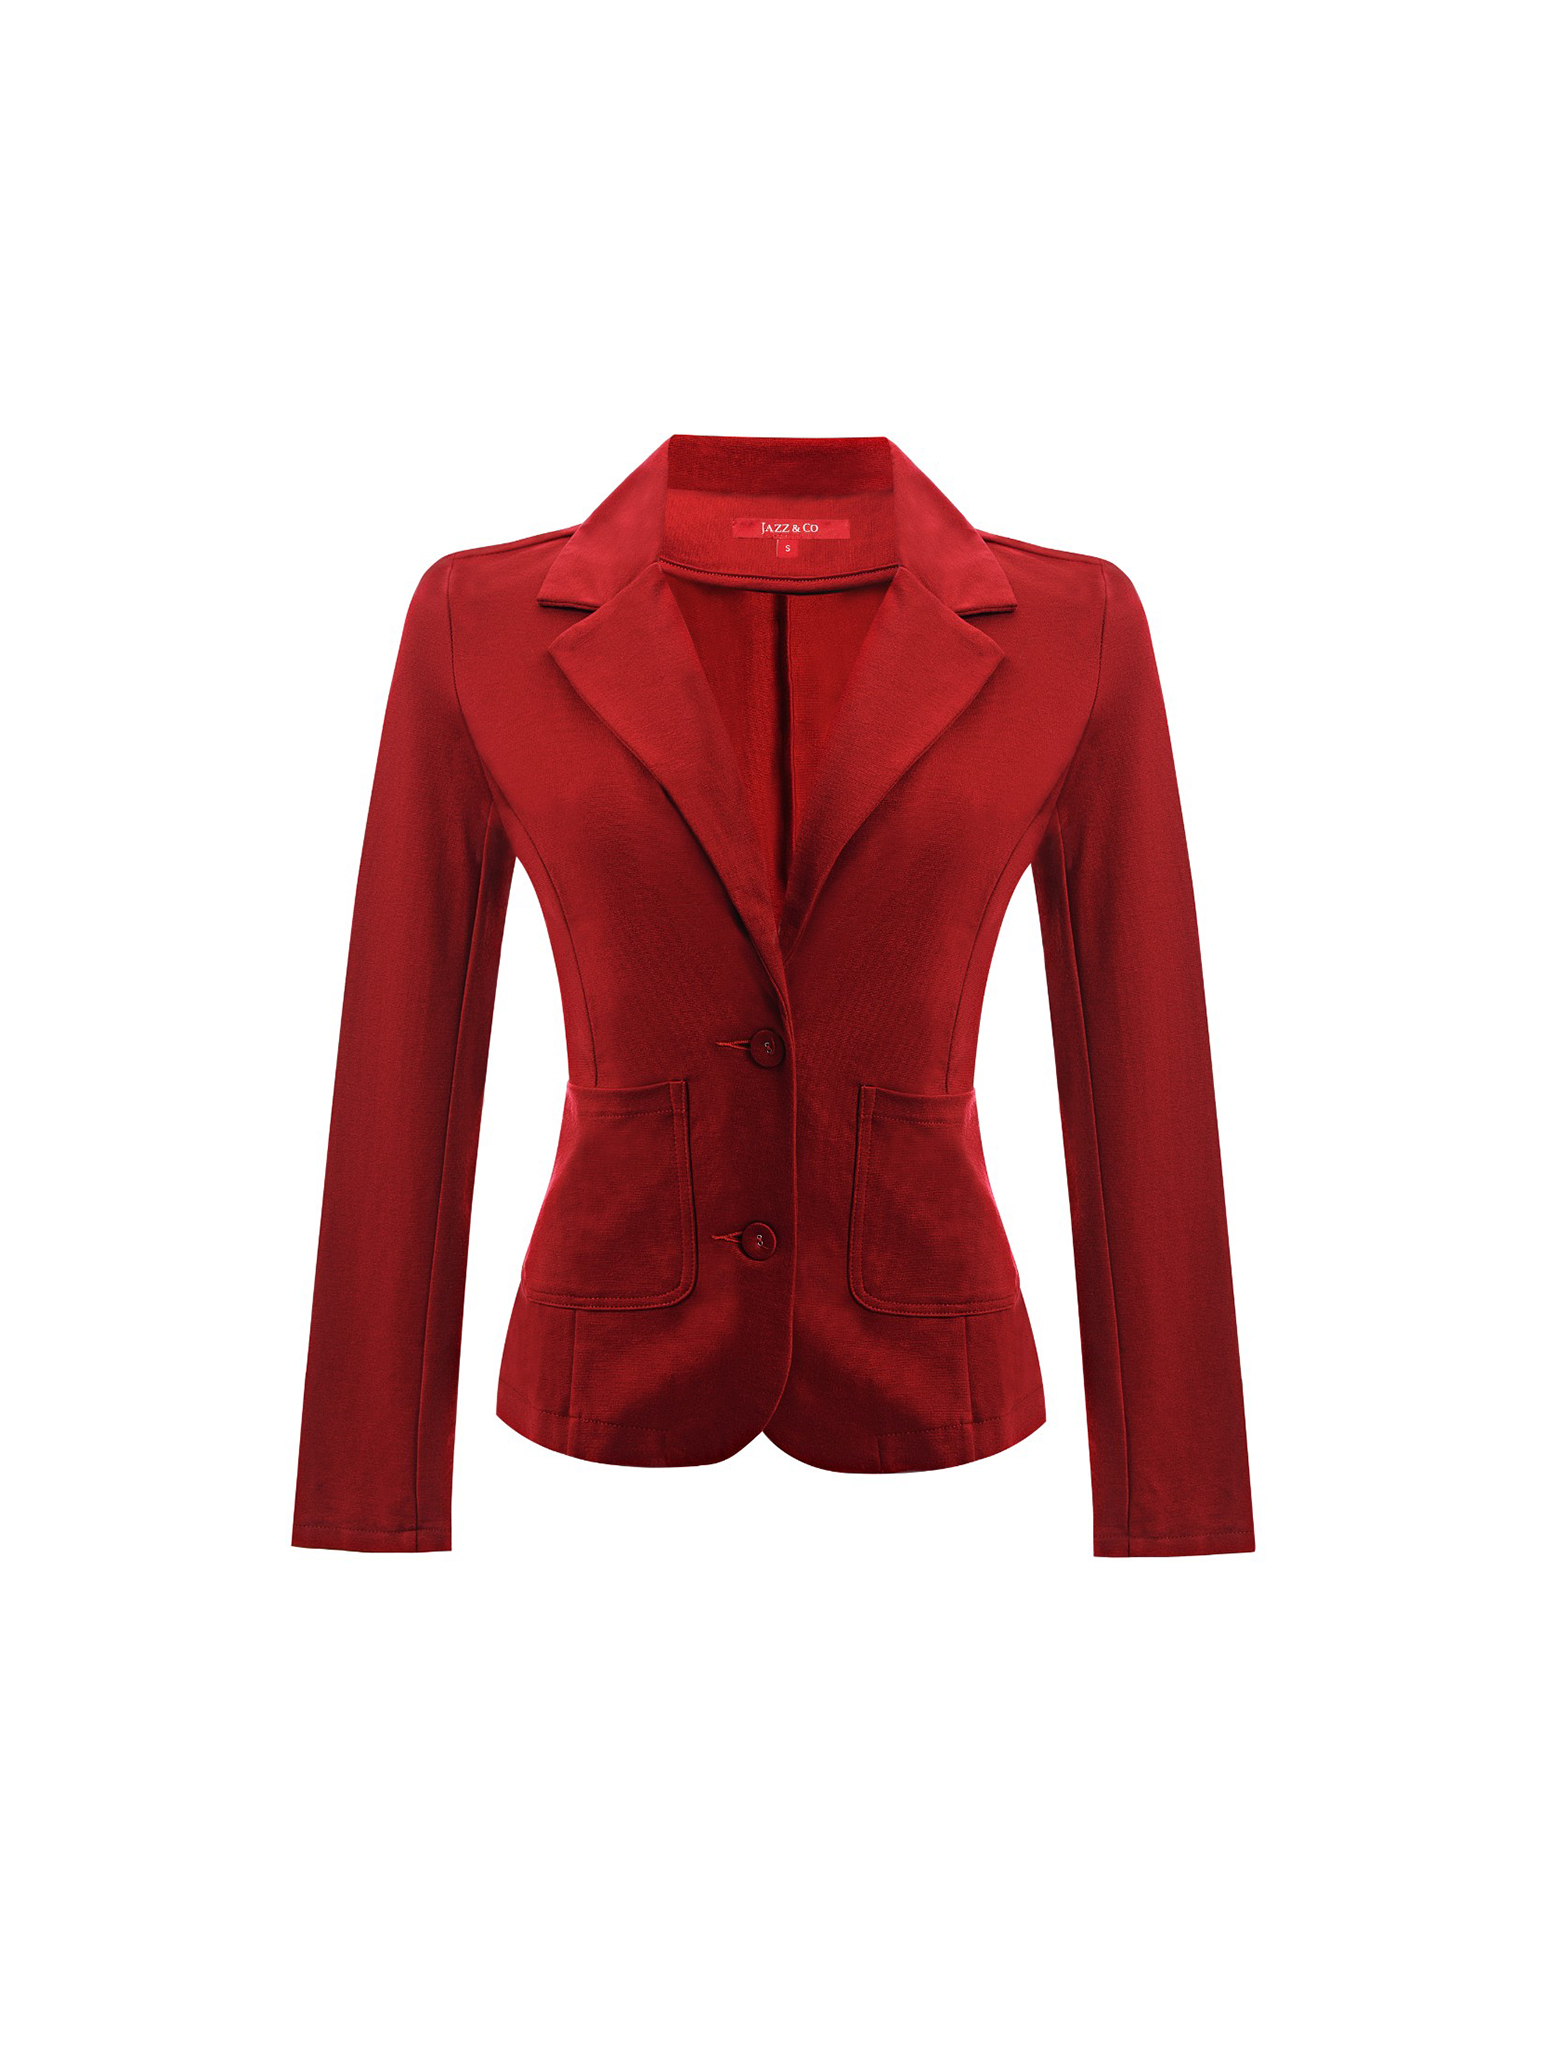 Jazz & Co Women Standard Size red waistcoat stylish outerwear